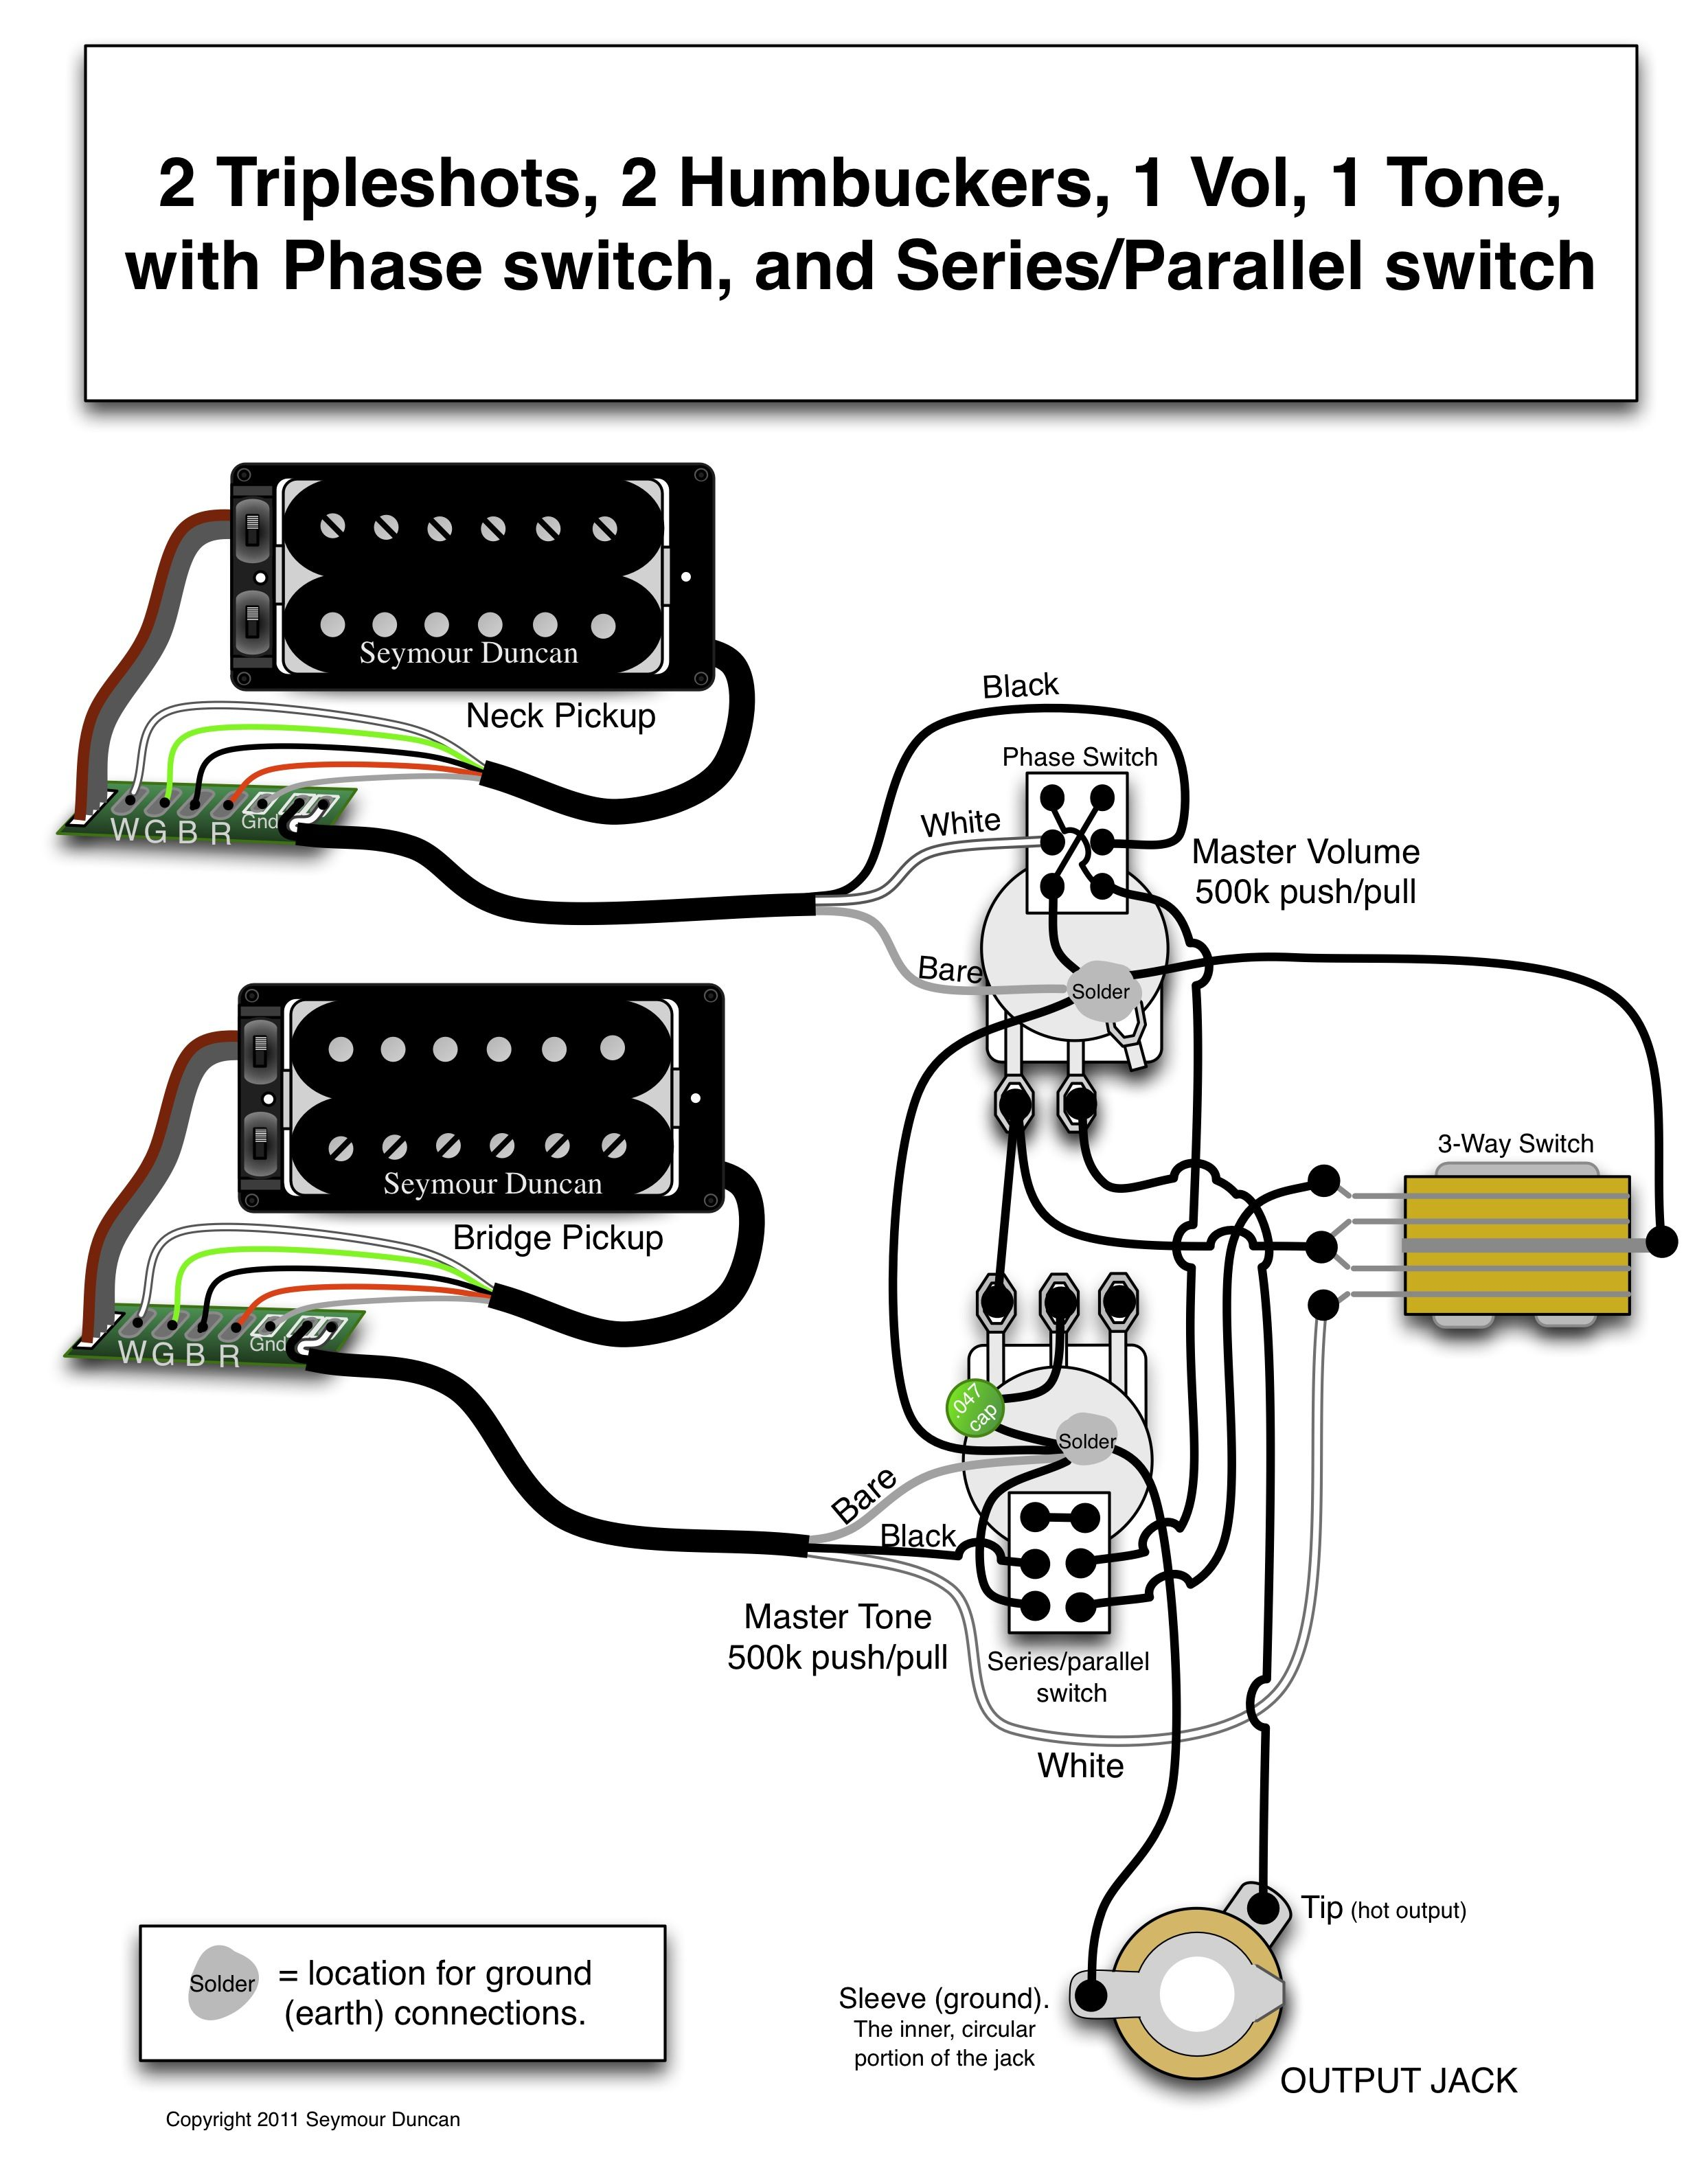 seymour duncan wiring diagram 2 triple shots 2 humbuckers 1 vol rh pinterest com seymour duncan sh 1 wiring diagram duncan designed wiring diagram